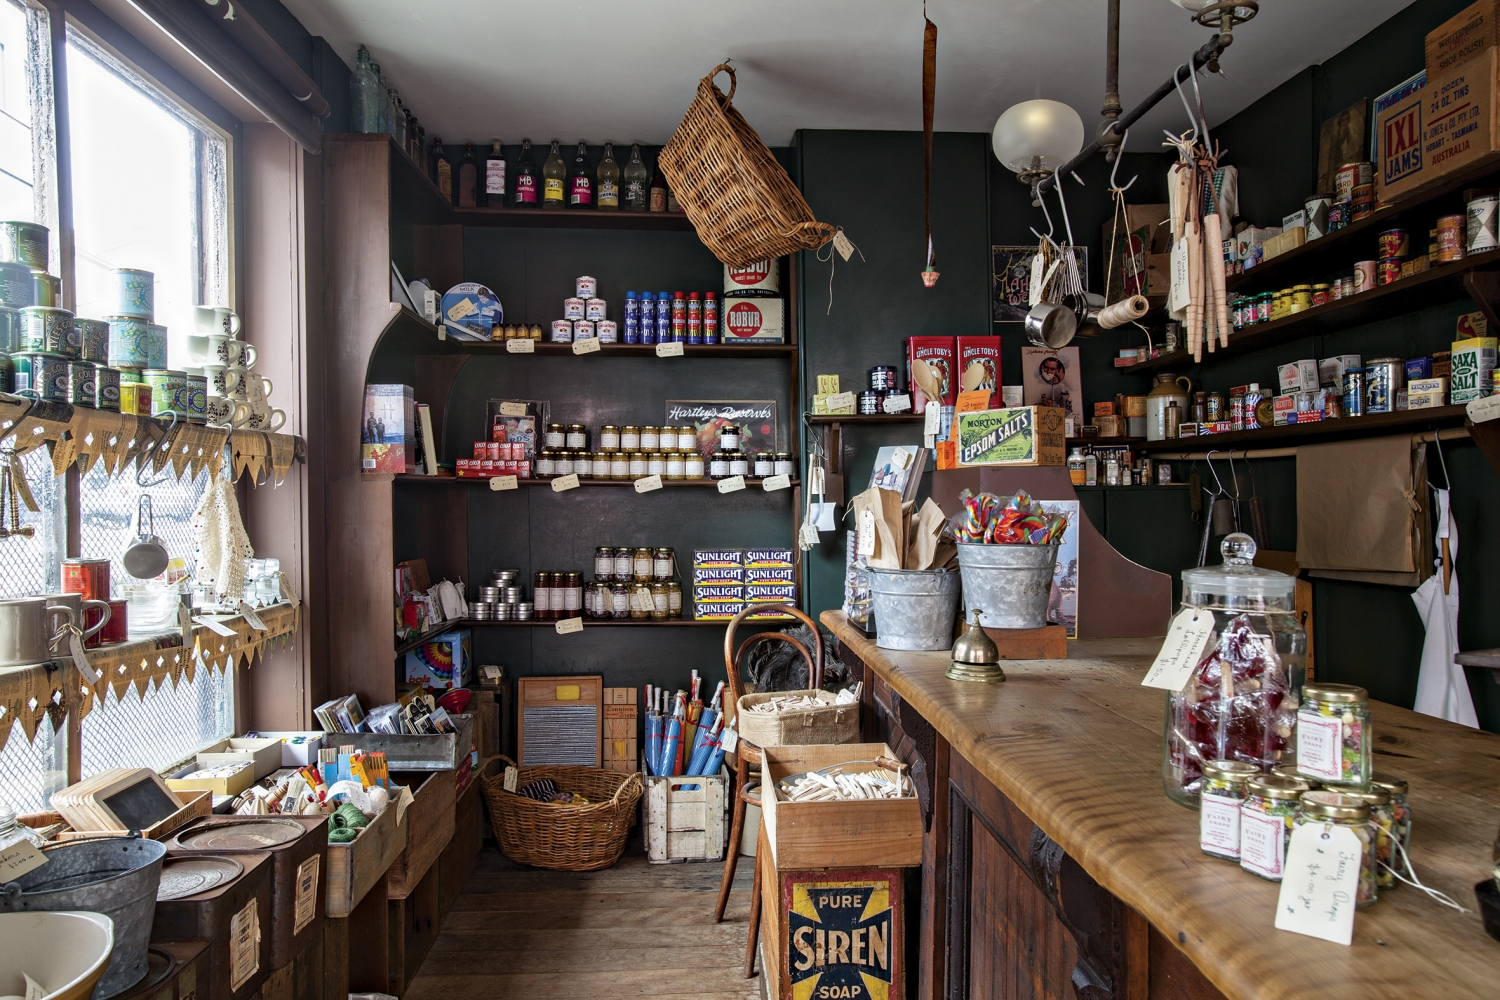 Old-fashioned shop interiro with long bench to right and shelving to right and back, carrying a variety of jars and packets, with objects hanging from hooks over the counter.